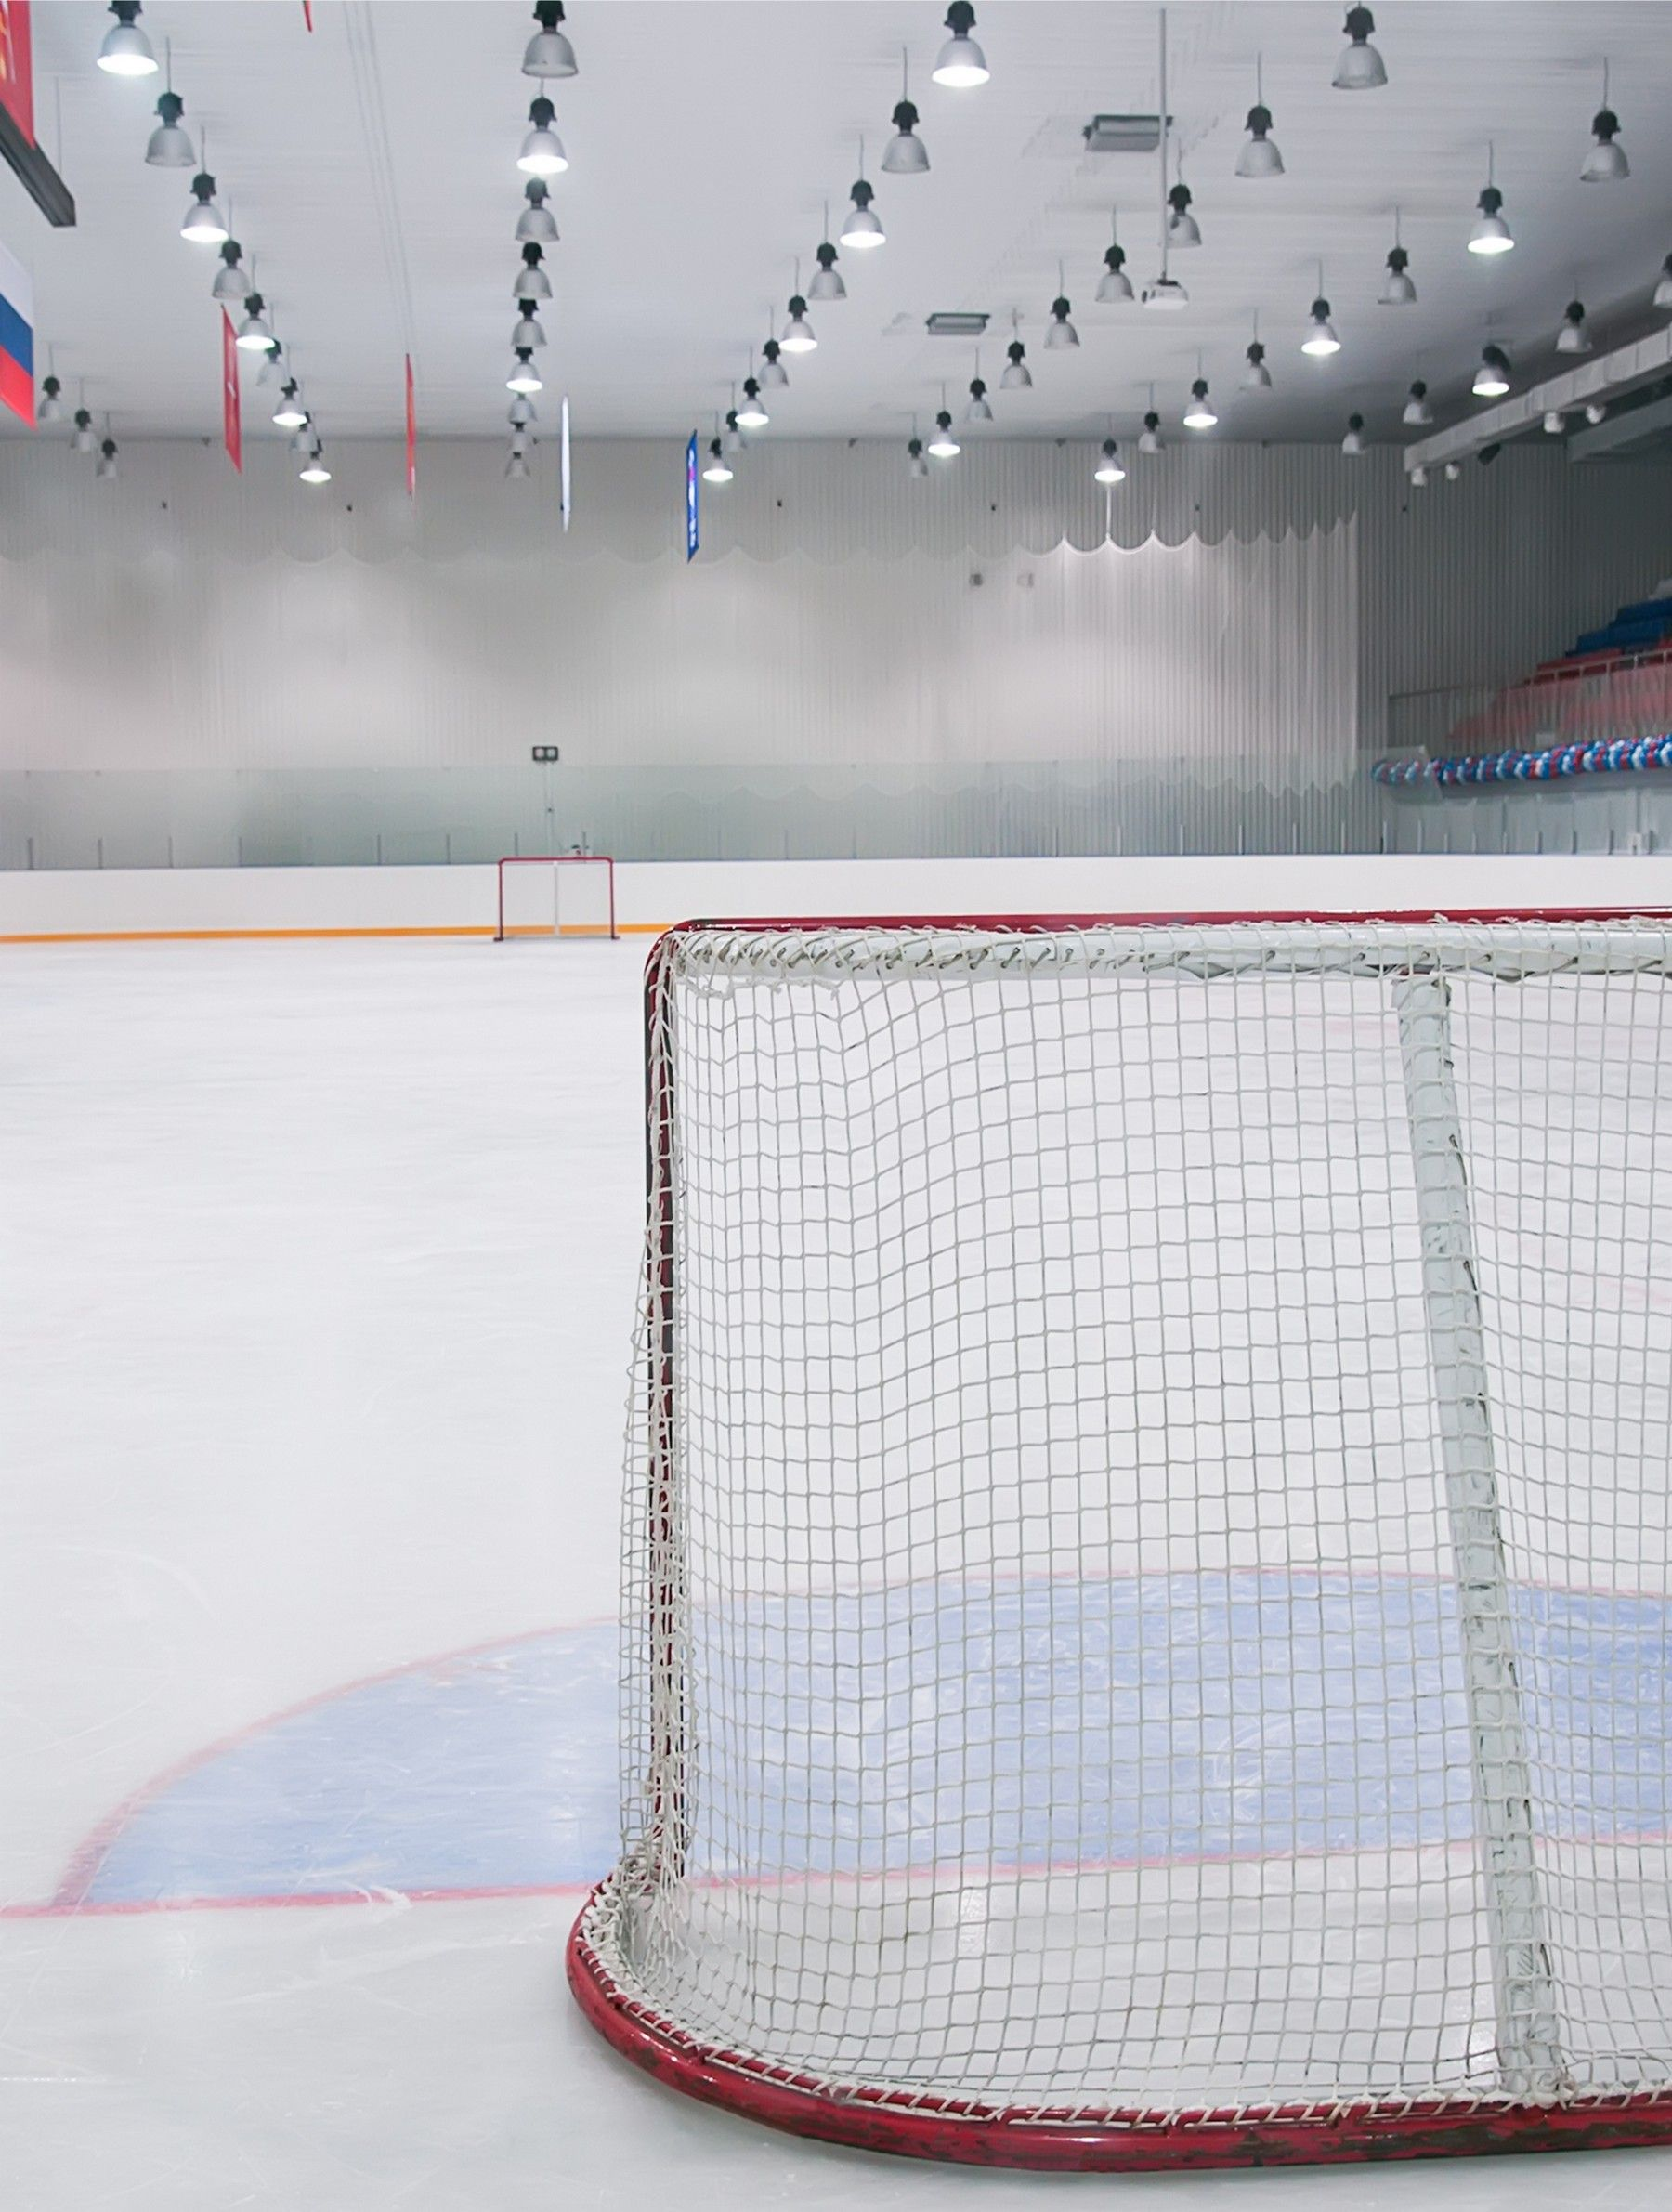 Hockey Arena Ice Sports Backdrop Hockey Arena Ice Sports Hockey